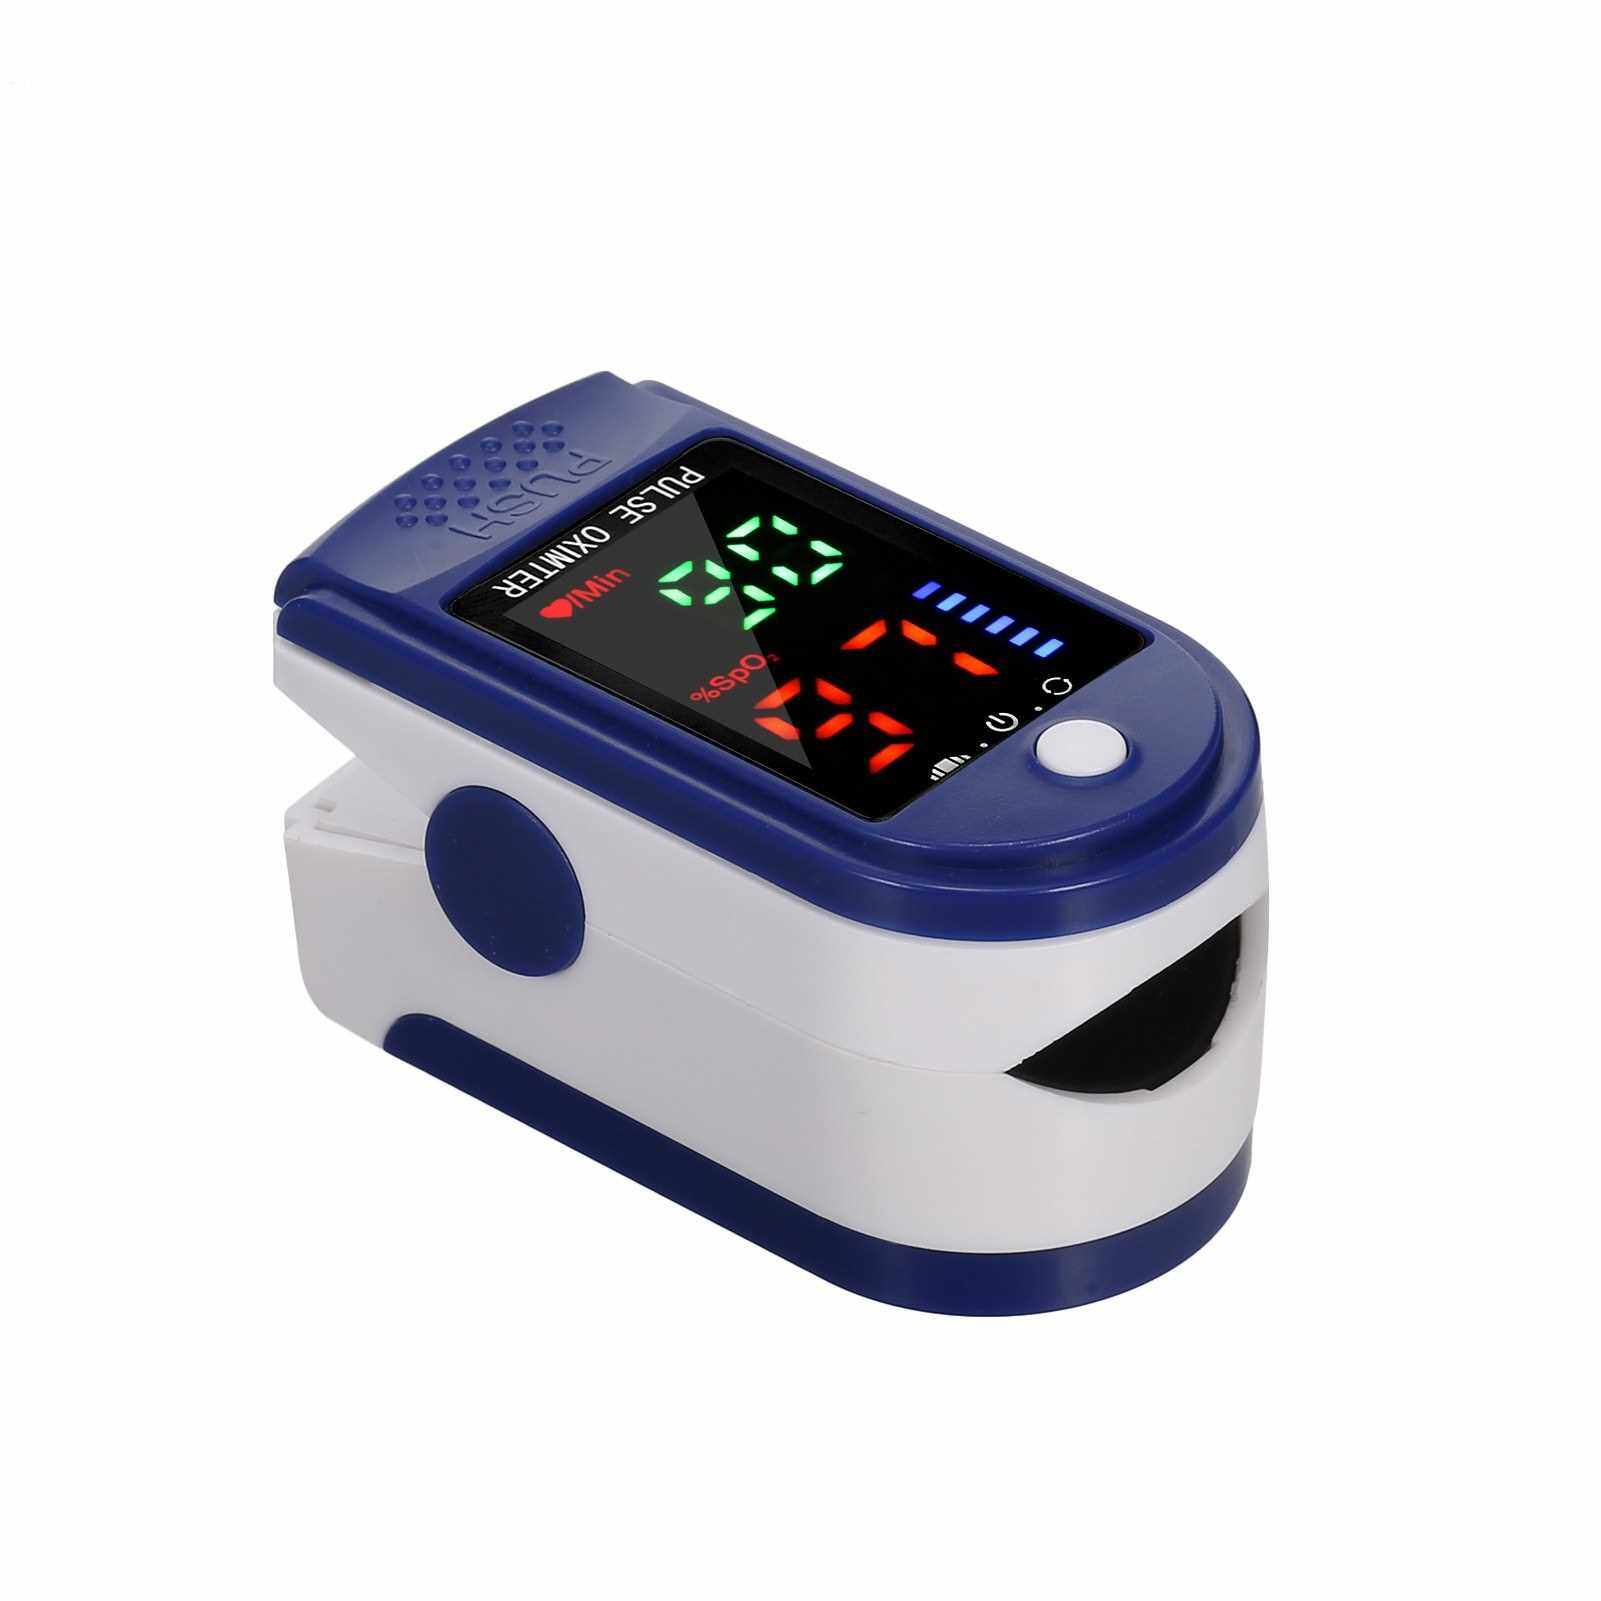 Best Selling Fingertip Pulse Oximeter Blood Oxygen Saturation & Heart Rate Detection 10s Quick Measure & Auto-off Alarm Function Portable SpO2 & Min Monitor for Home Travel (Standard)